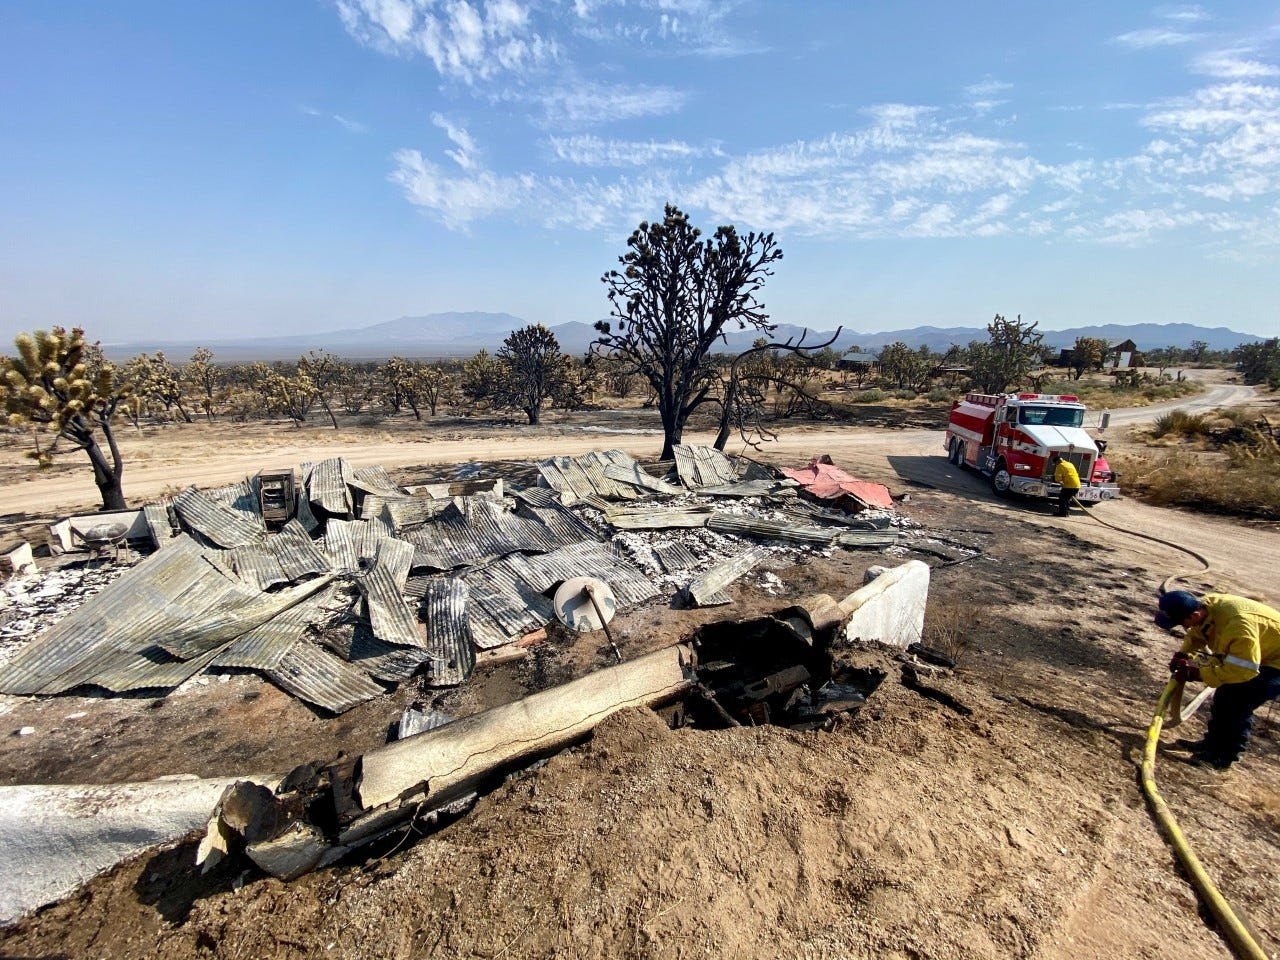 Firefighters work near a structure destroyed by the Dome Fire in the Mojave National Preserve.